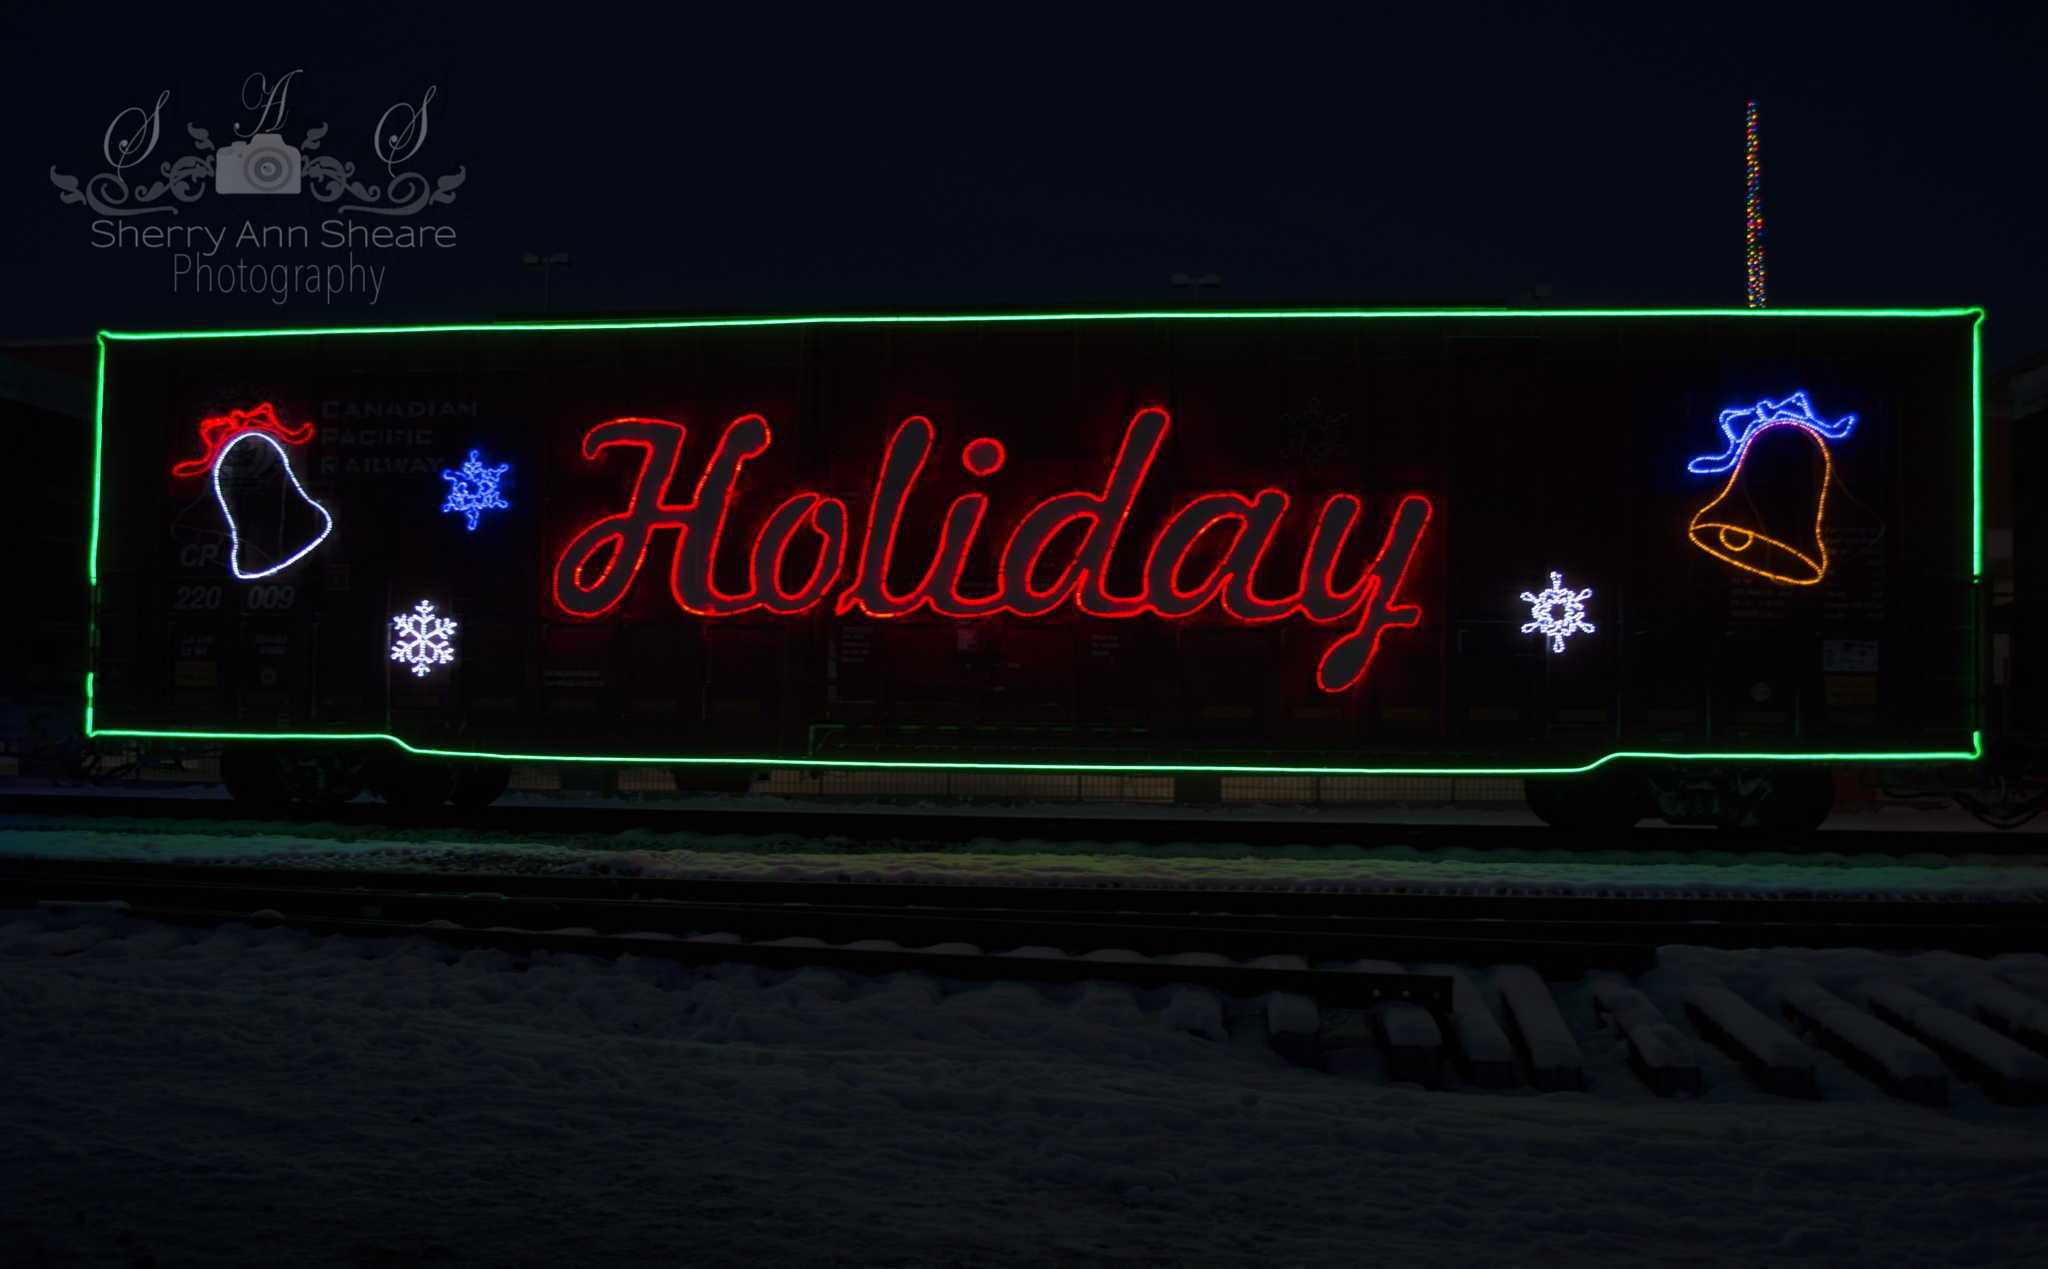 Holiday Train by Sherry Ann Sheare